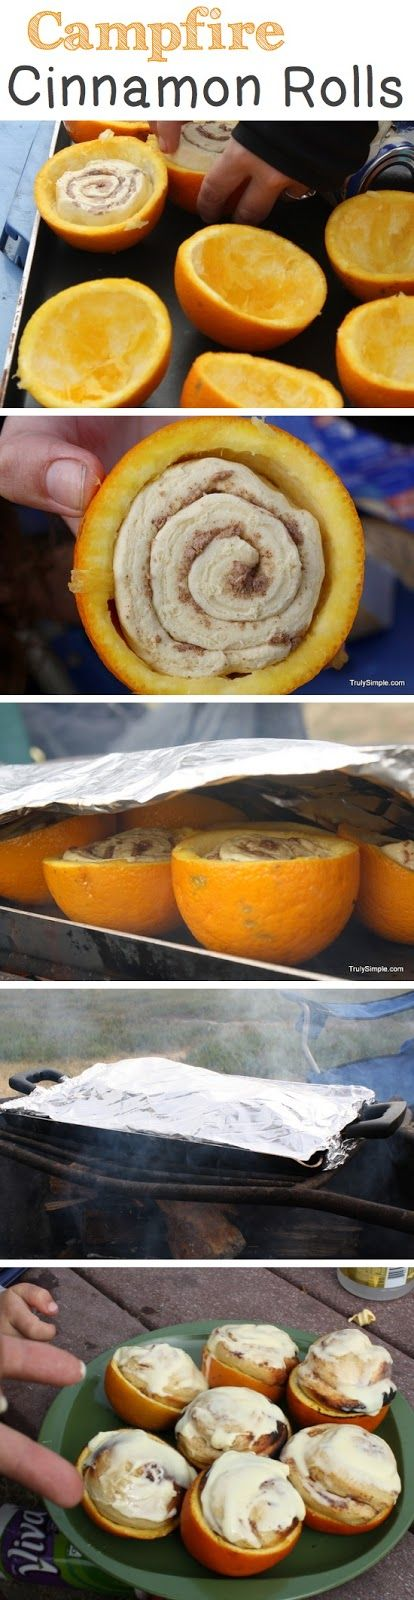 Campfire cinnamon rolls - perfect for a midnight feast or breakfast  @cheryl ng ng ng ng ng ng ng Lynn